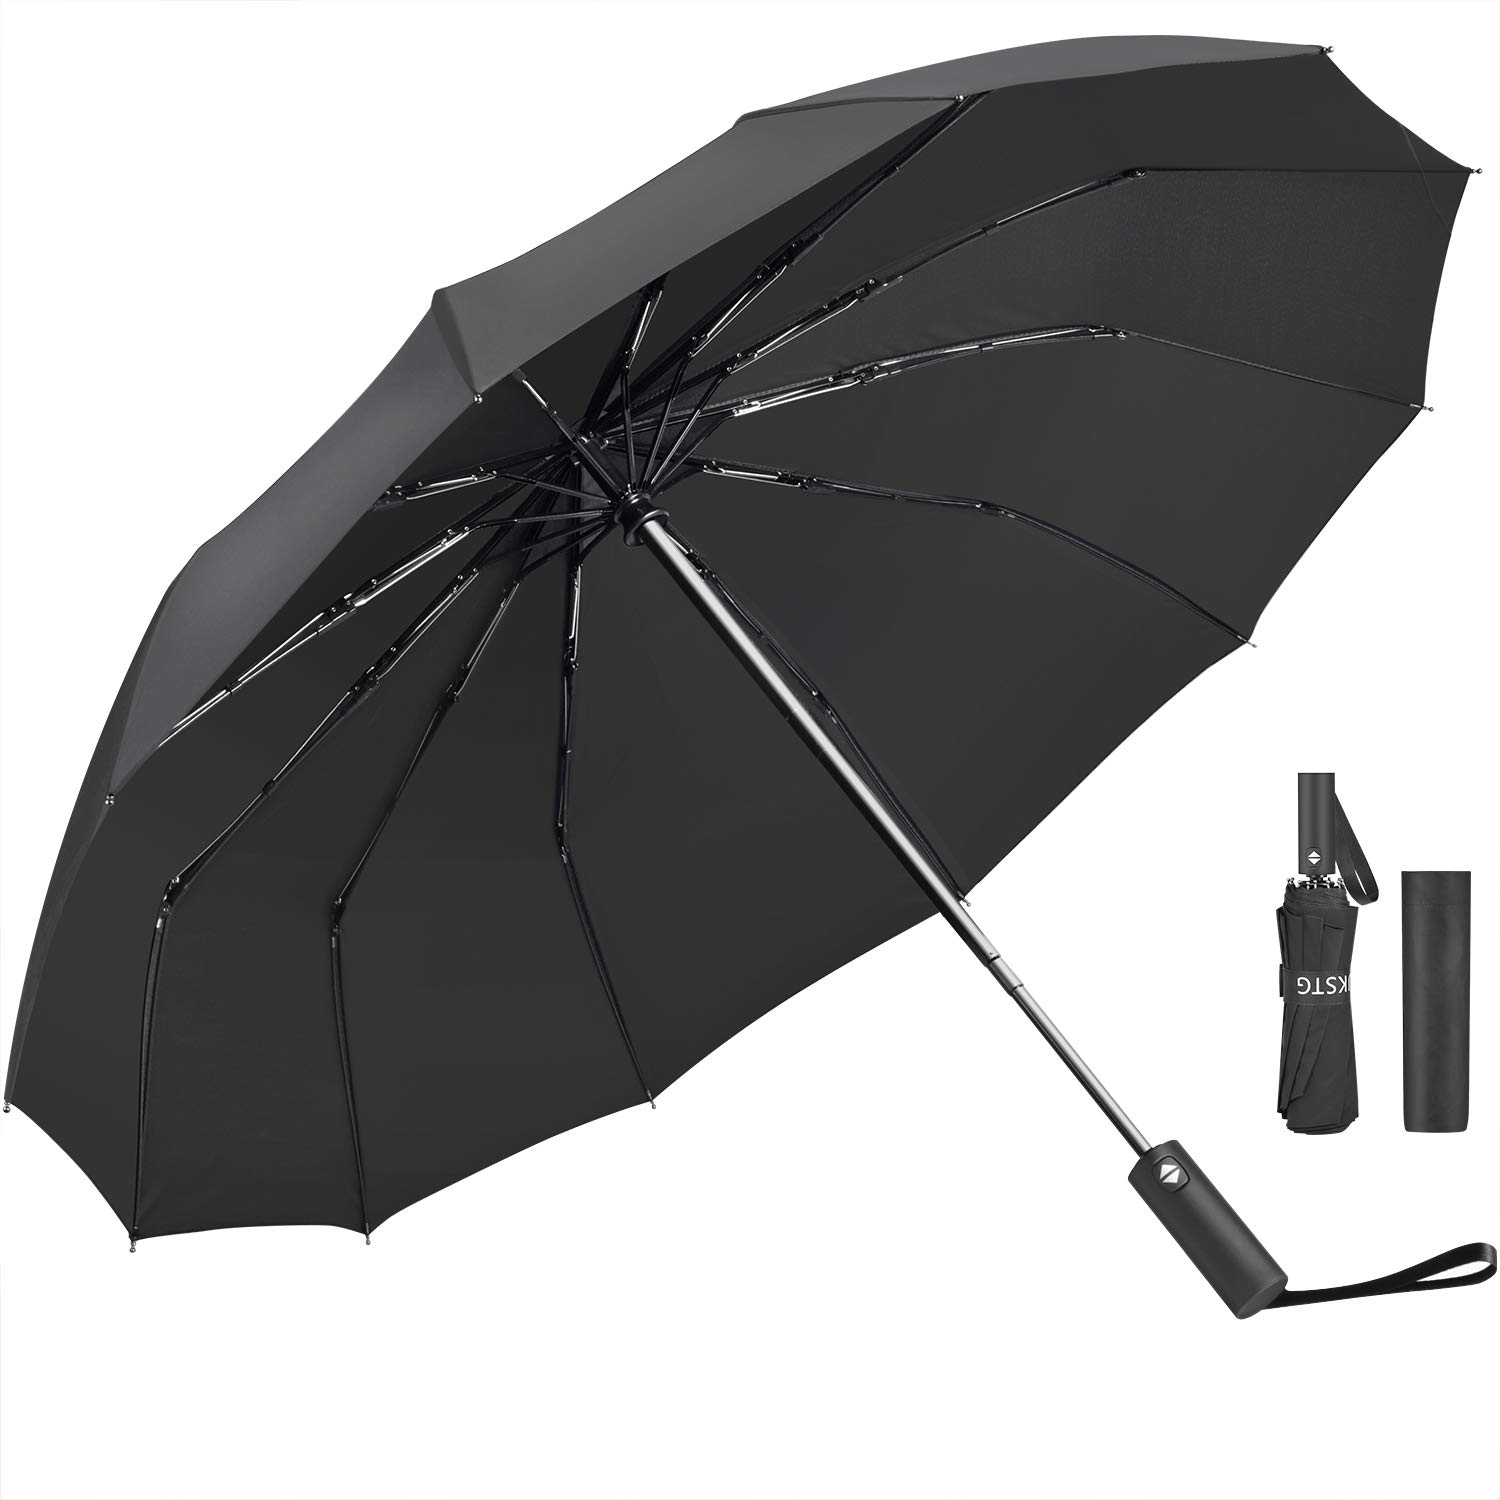 JUKSTG Windproof Waterproof Umbrellas Ergonomic